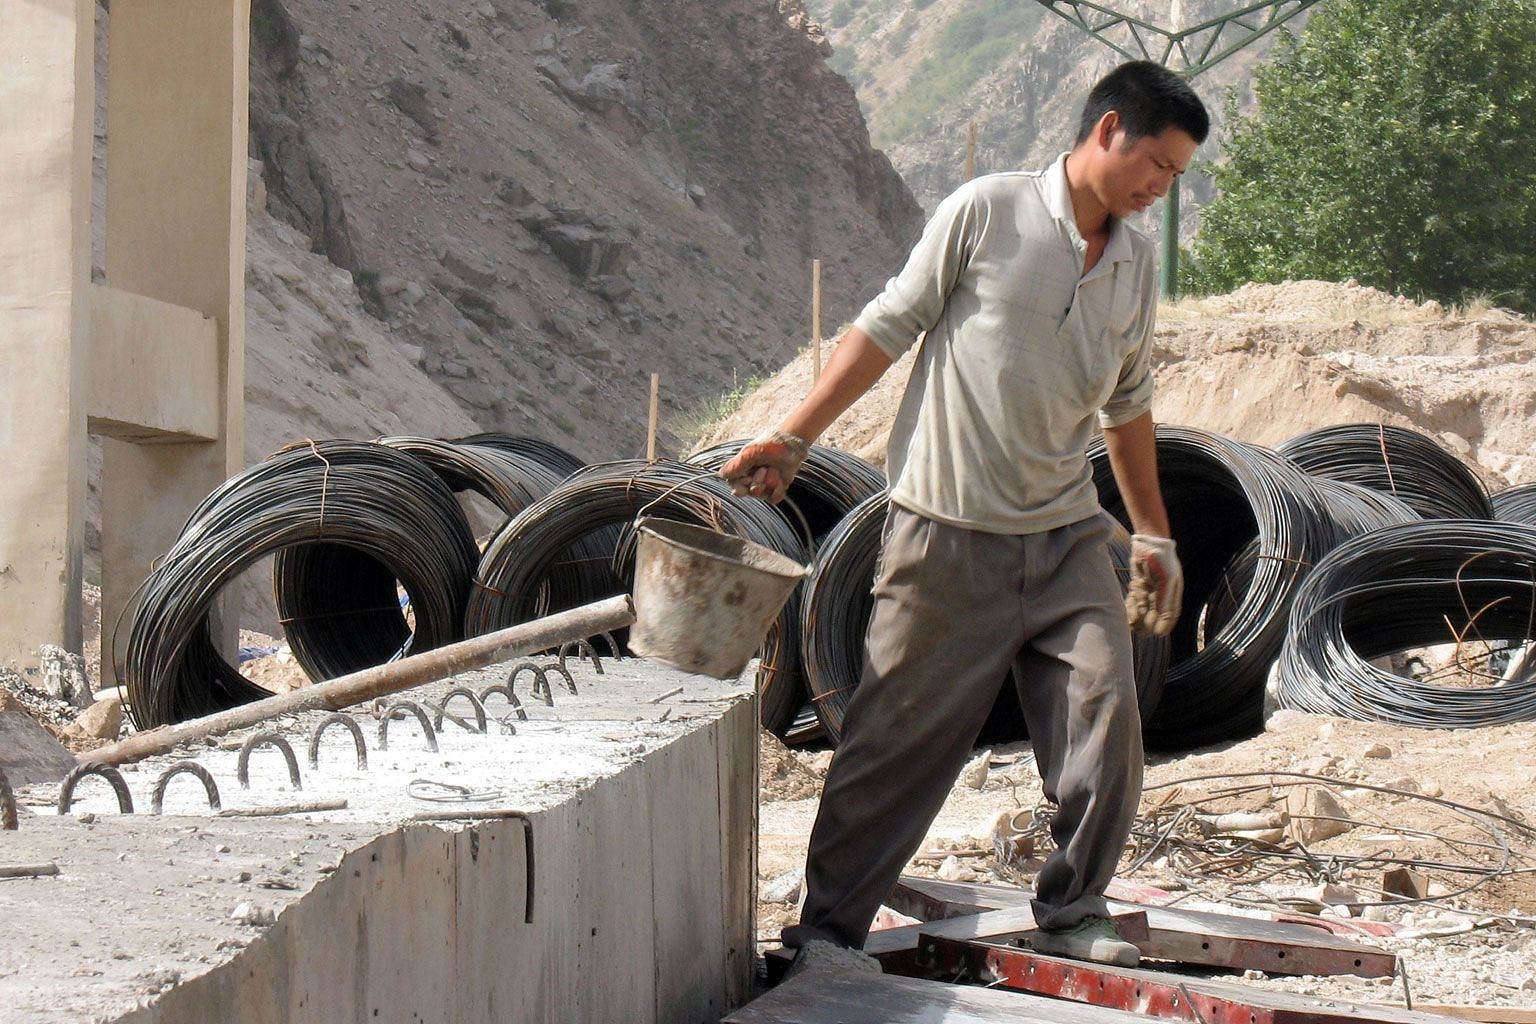 A Chinese worker at a road construction site between Dushanbe and Khujand in Tajikistan. The Central Asian country, once an outpost of the former Soviet Union, in increasingly dependent on China.